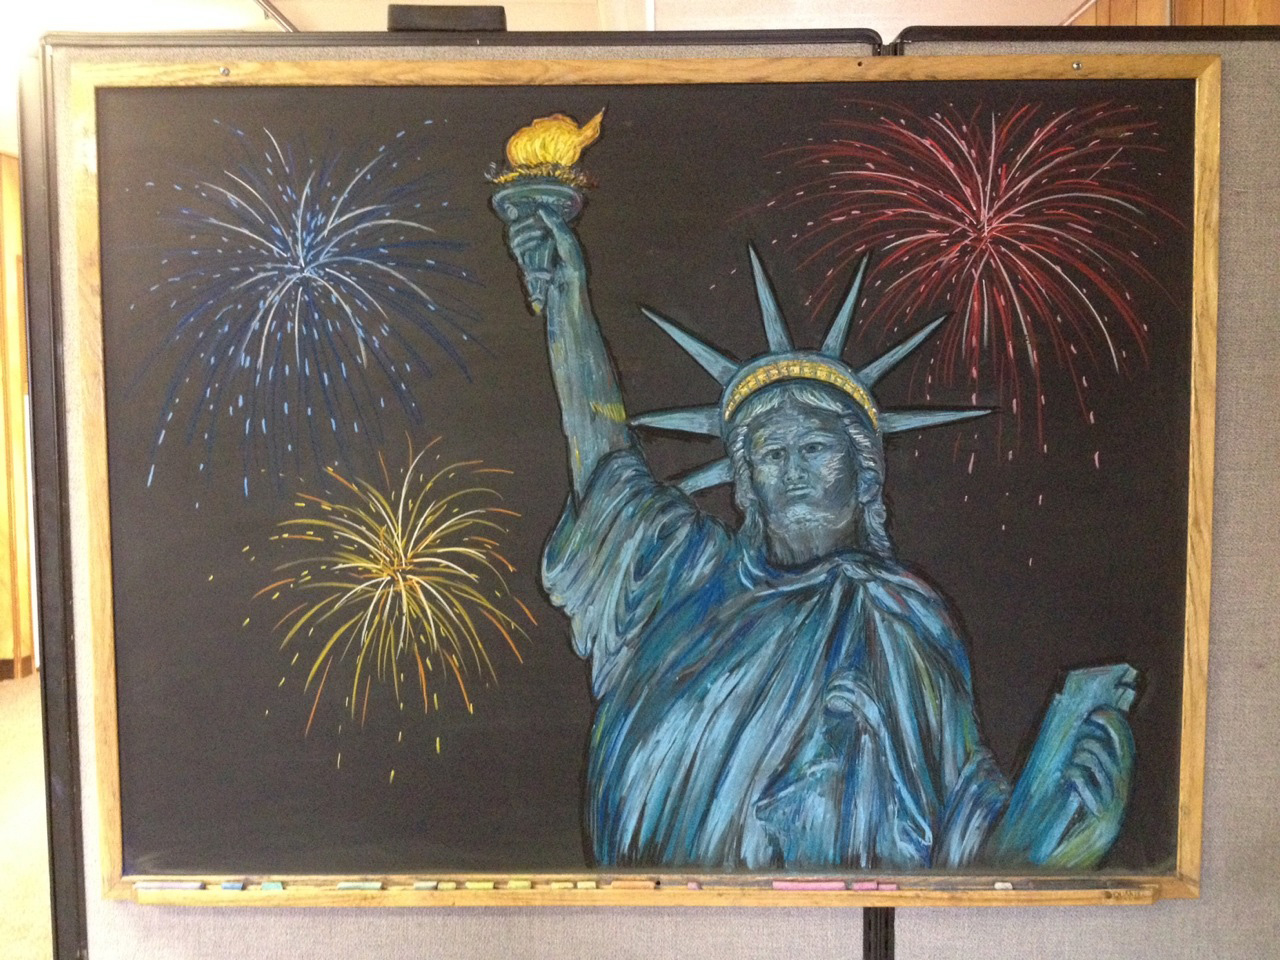 Julie Kurnat's latest chalk drawing reminds us to have a happy 4th of July! Image: Julie Kurnat, TD